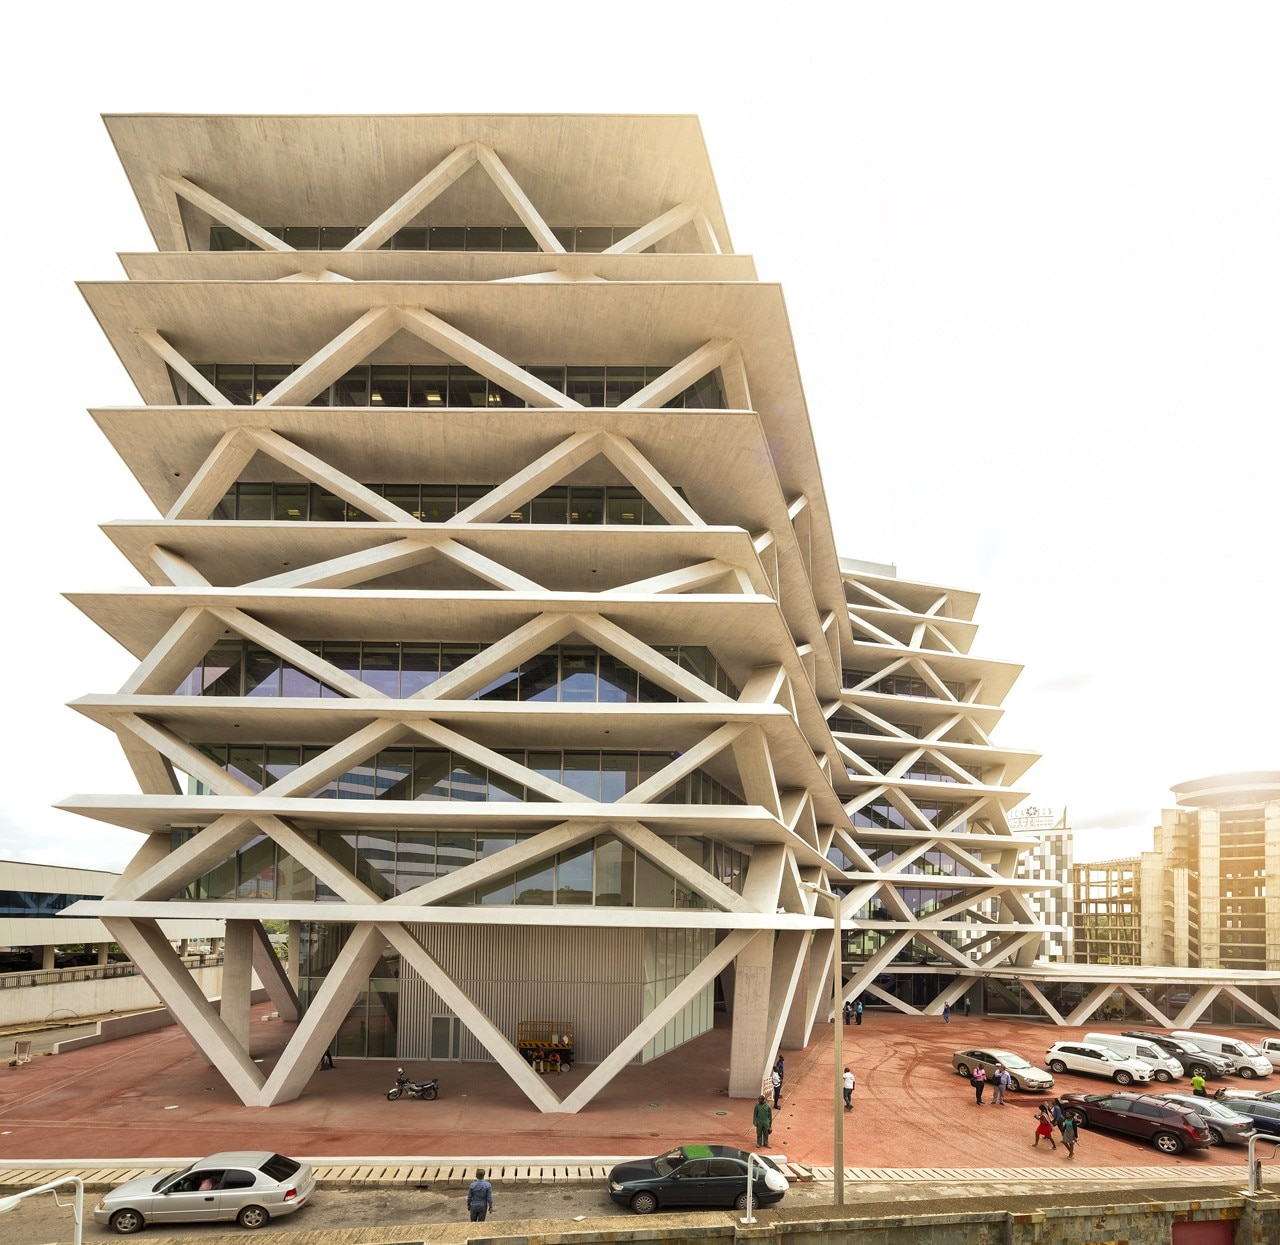 Mario Cucinella Architects, One Airport Square, Accra, Ghana